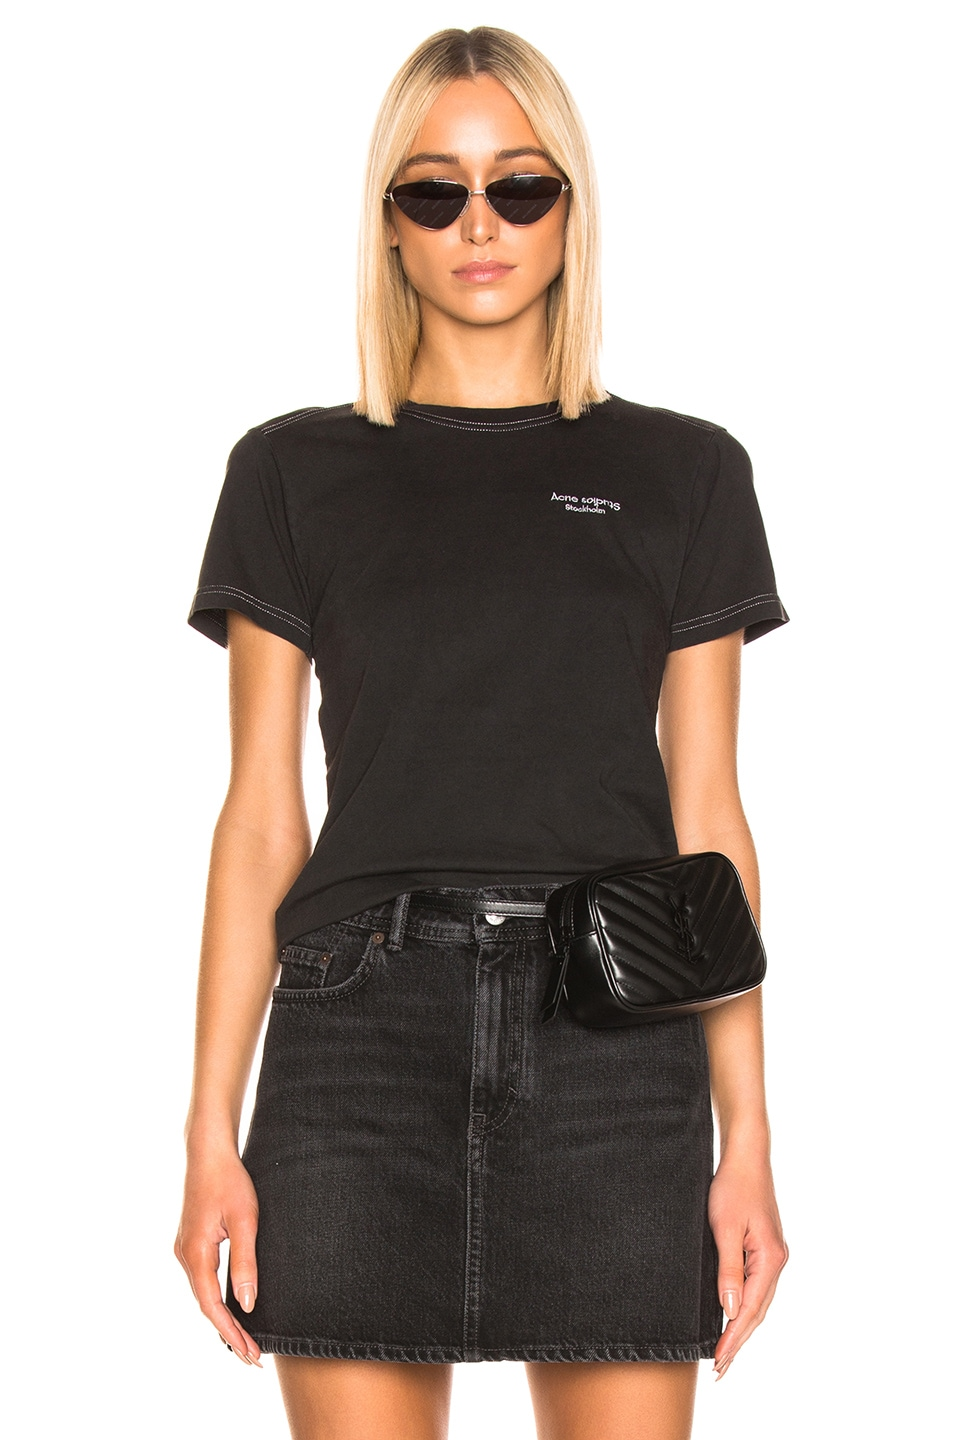 Image 1 of Acne Studios Wanda T Shirt in Black